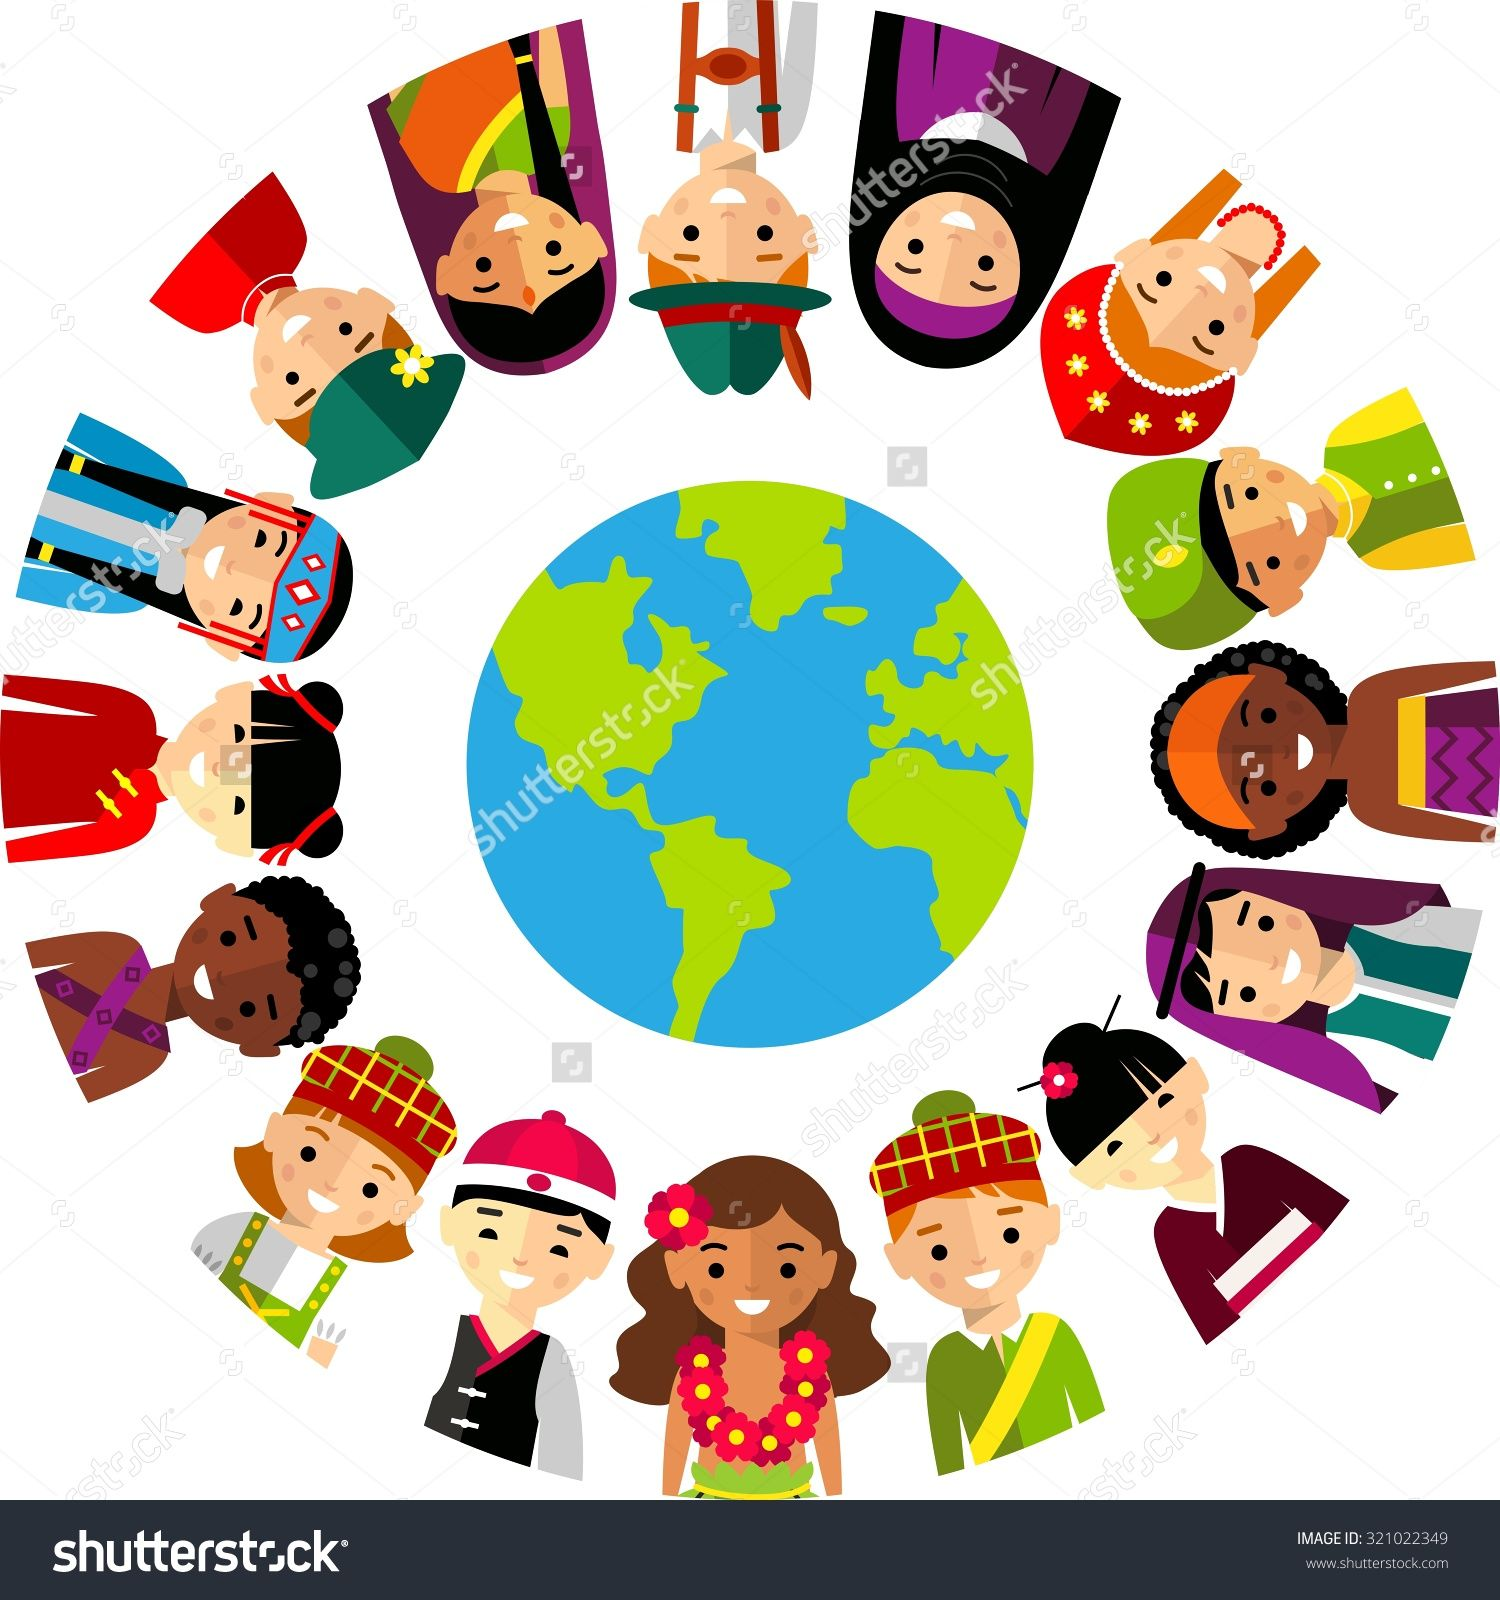 Child images clip page. Friendship clipart multicultural